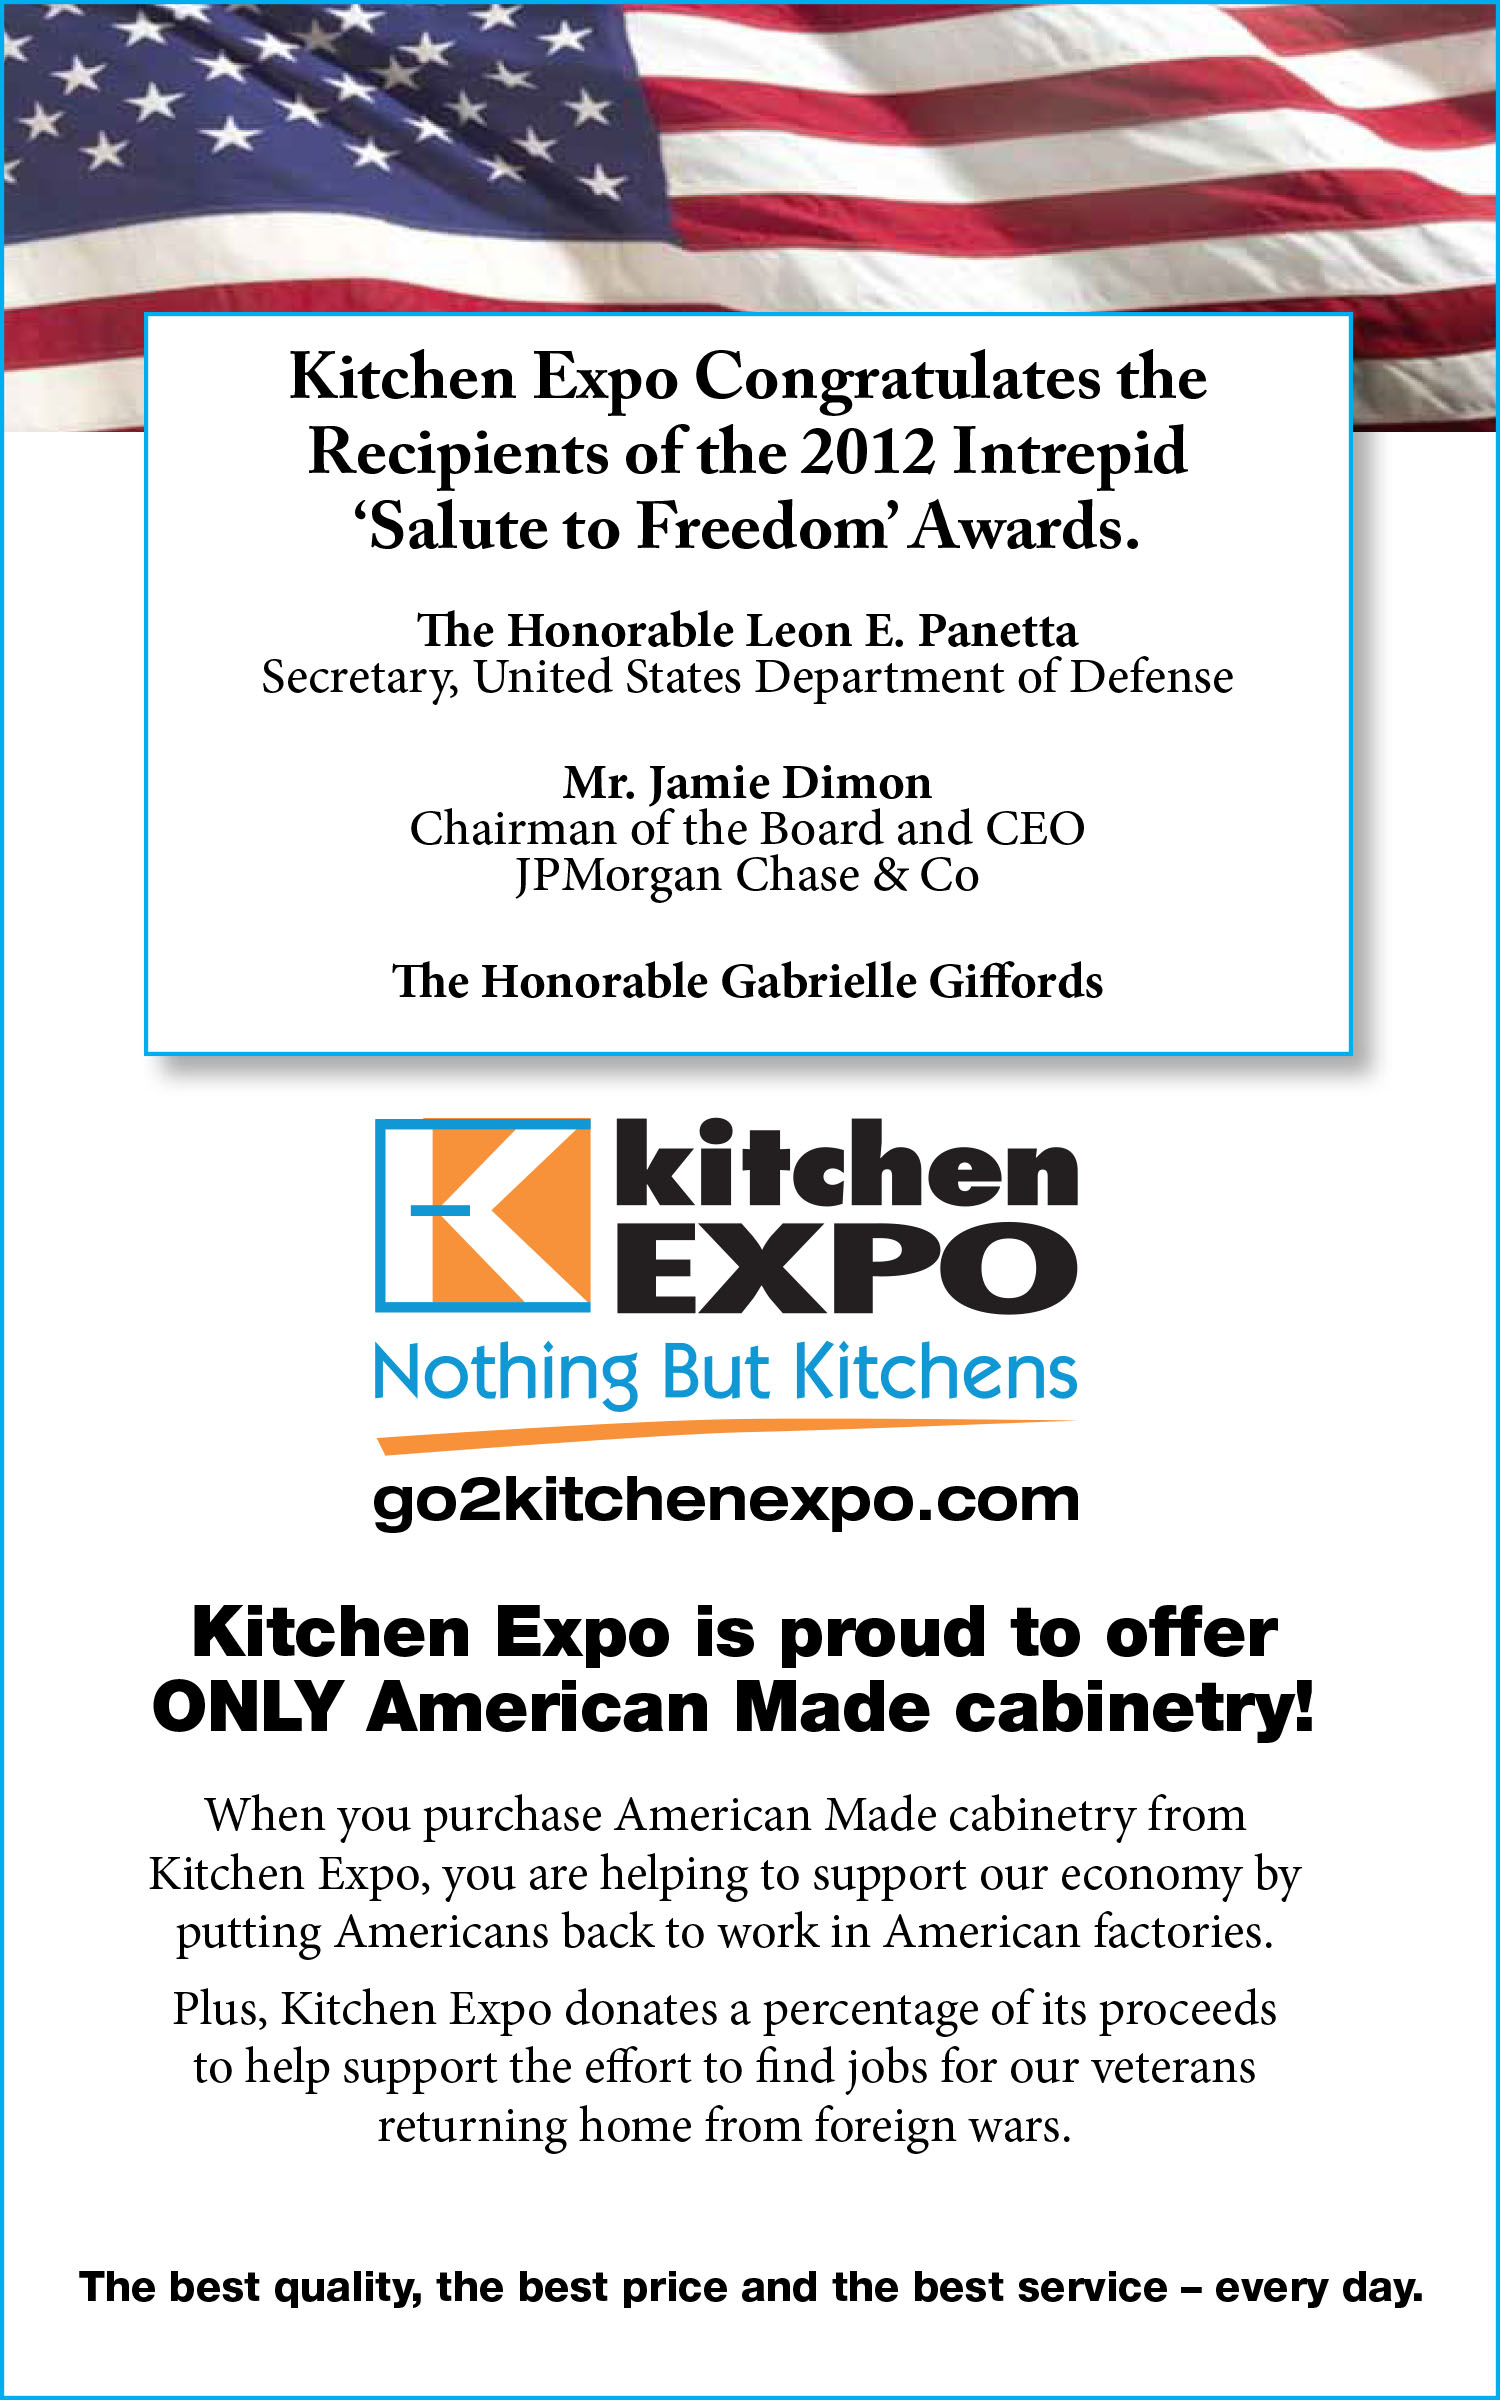 American Made Kitchen Expo -  american made kitchen